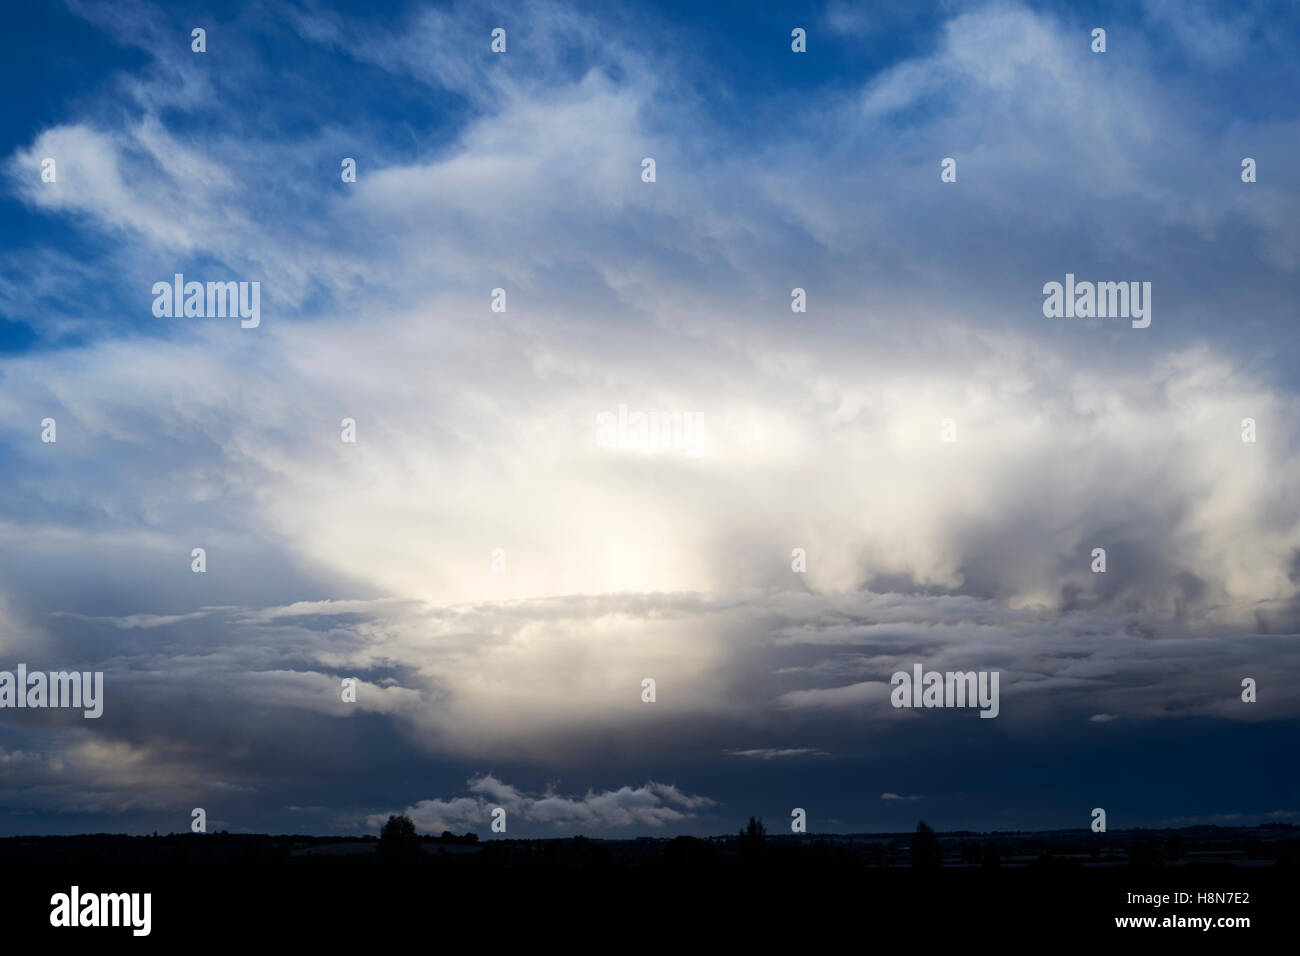 Storm clouds over the East of England, UK. - Stock Image